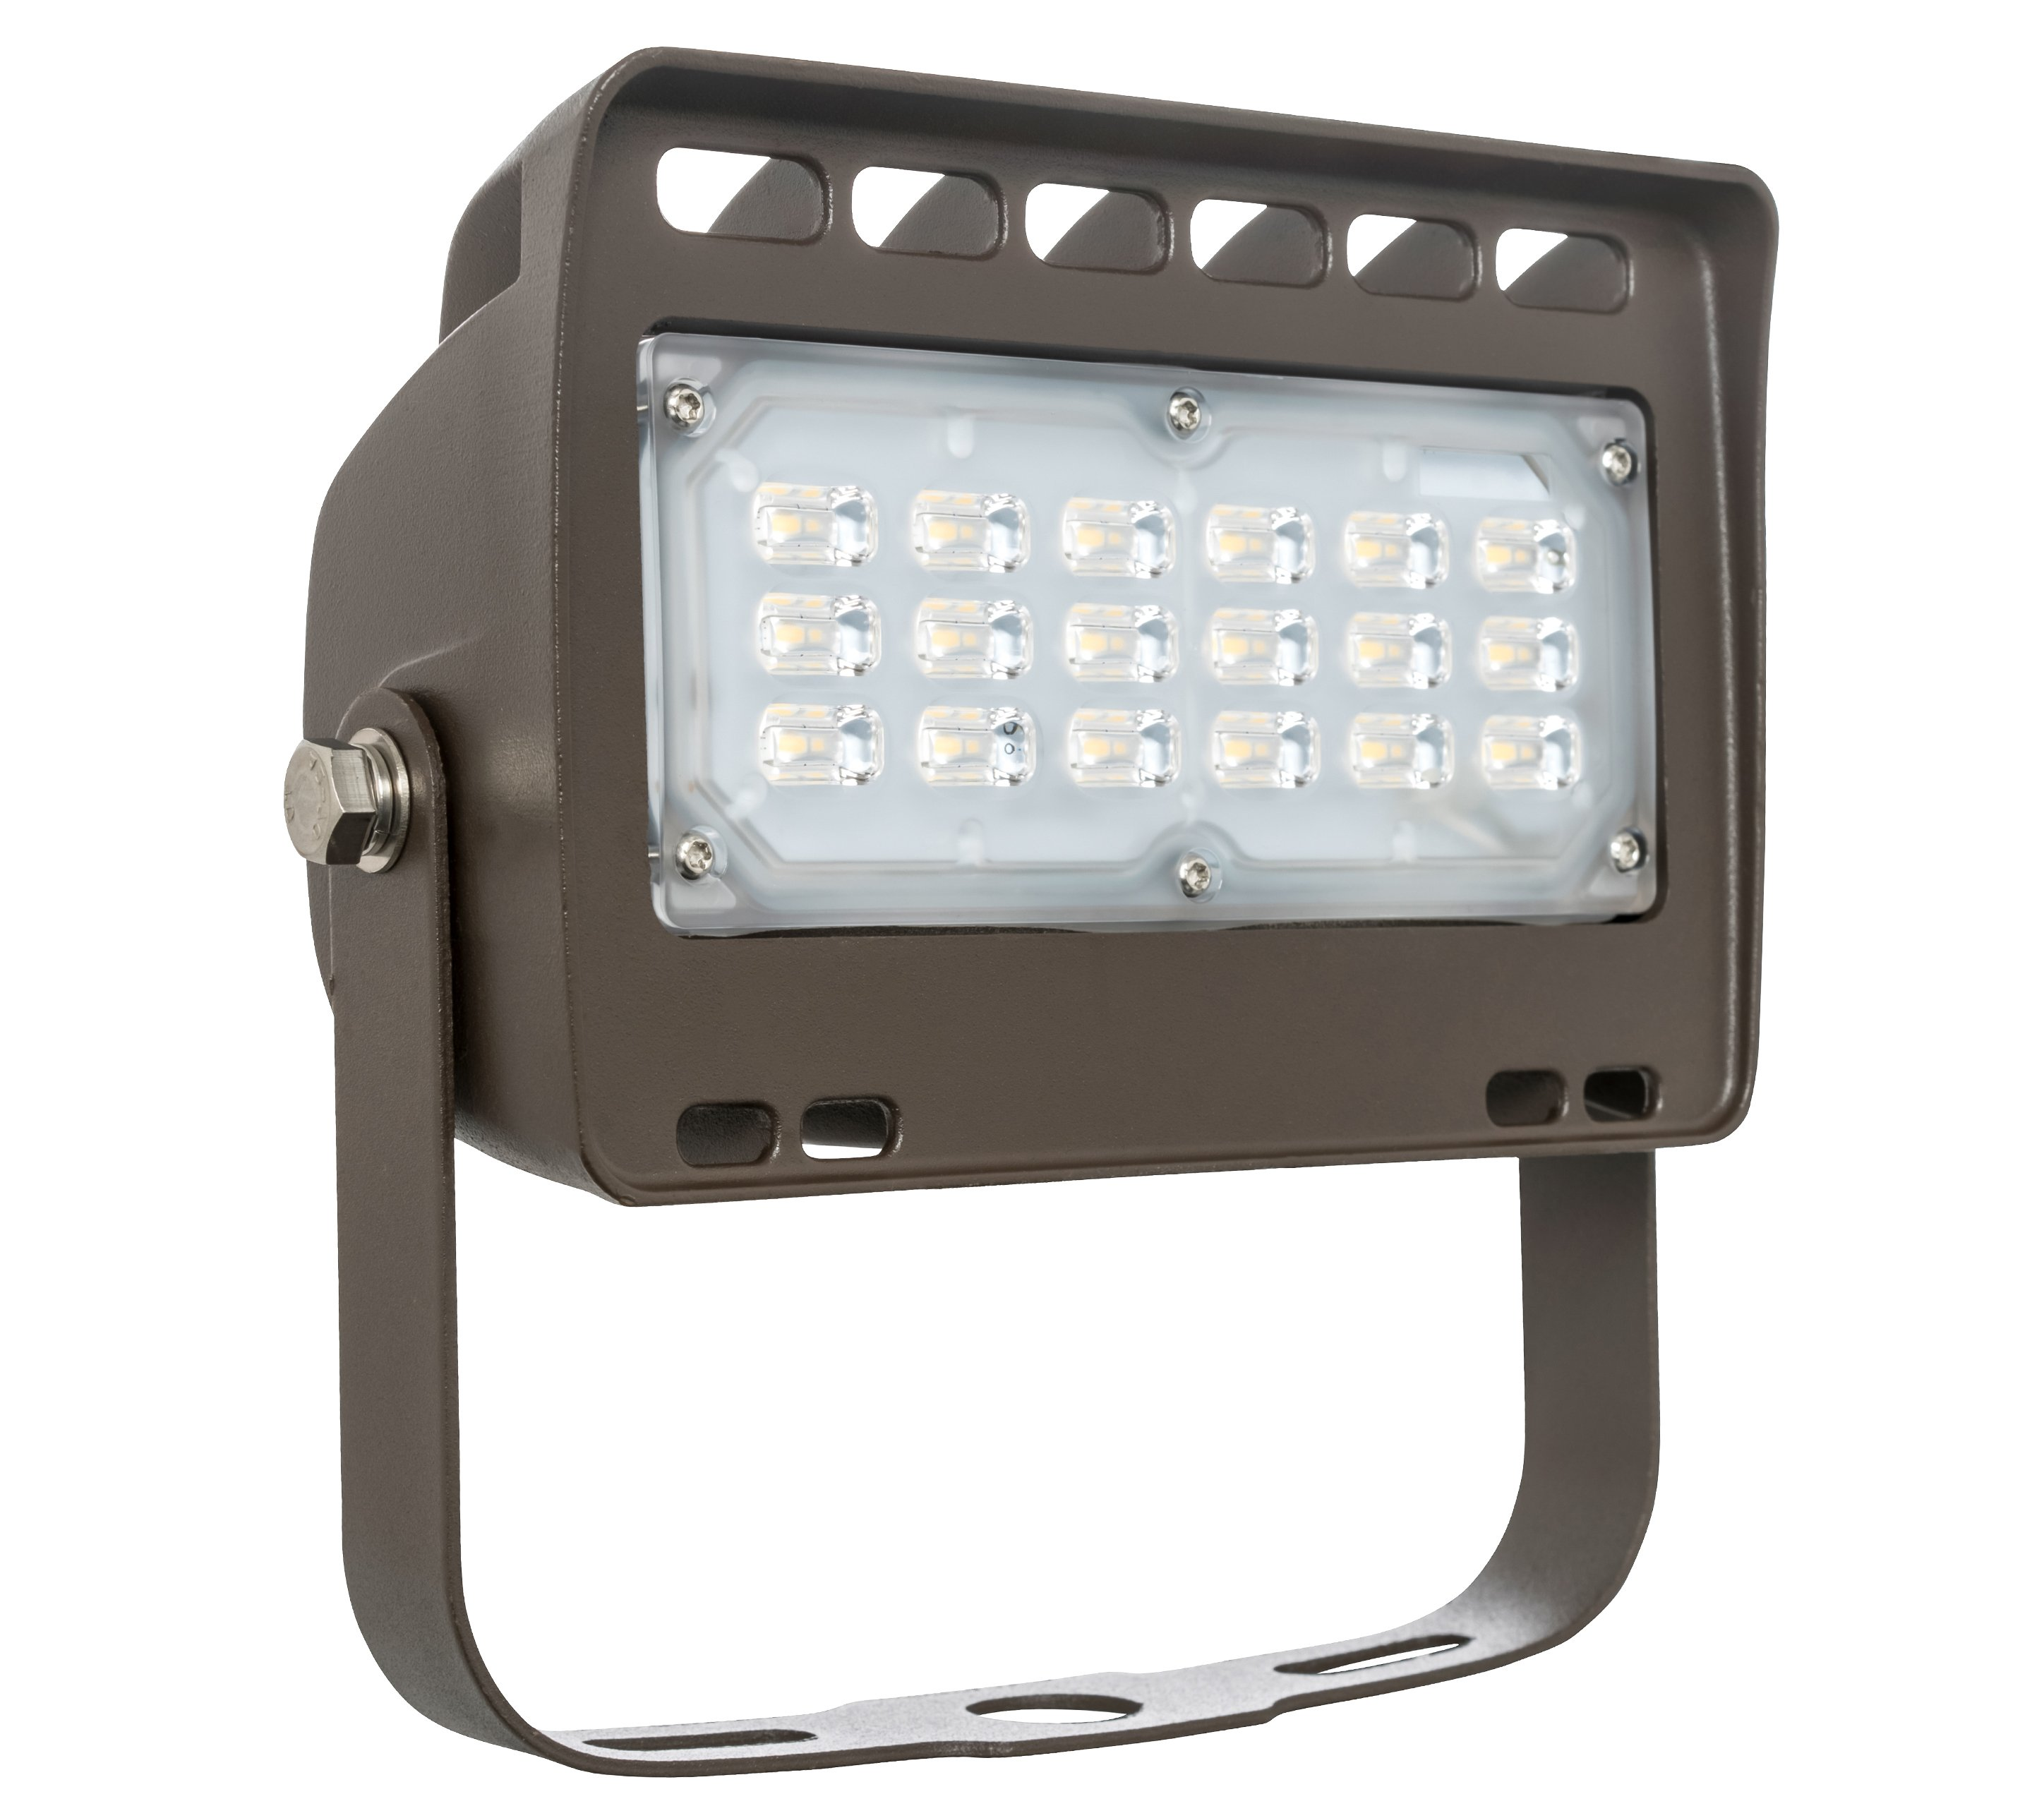 Westgate LED Outdoor Security Flood Light Fixture With